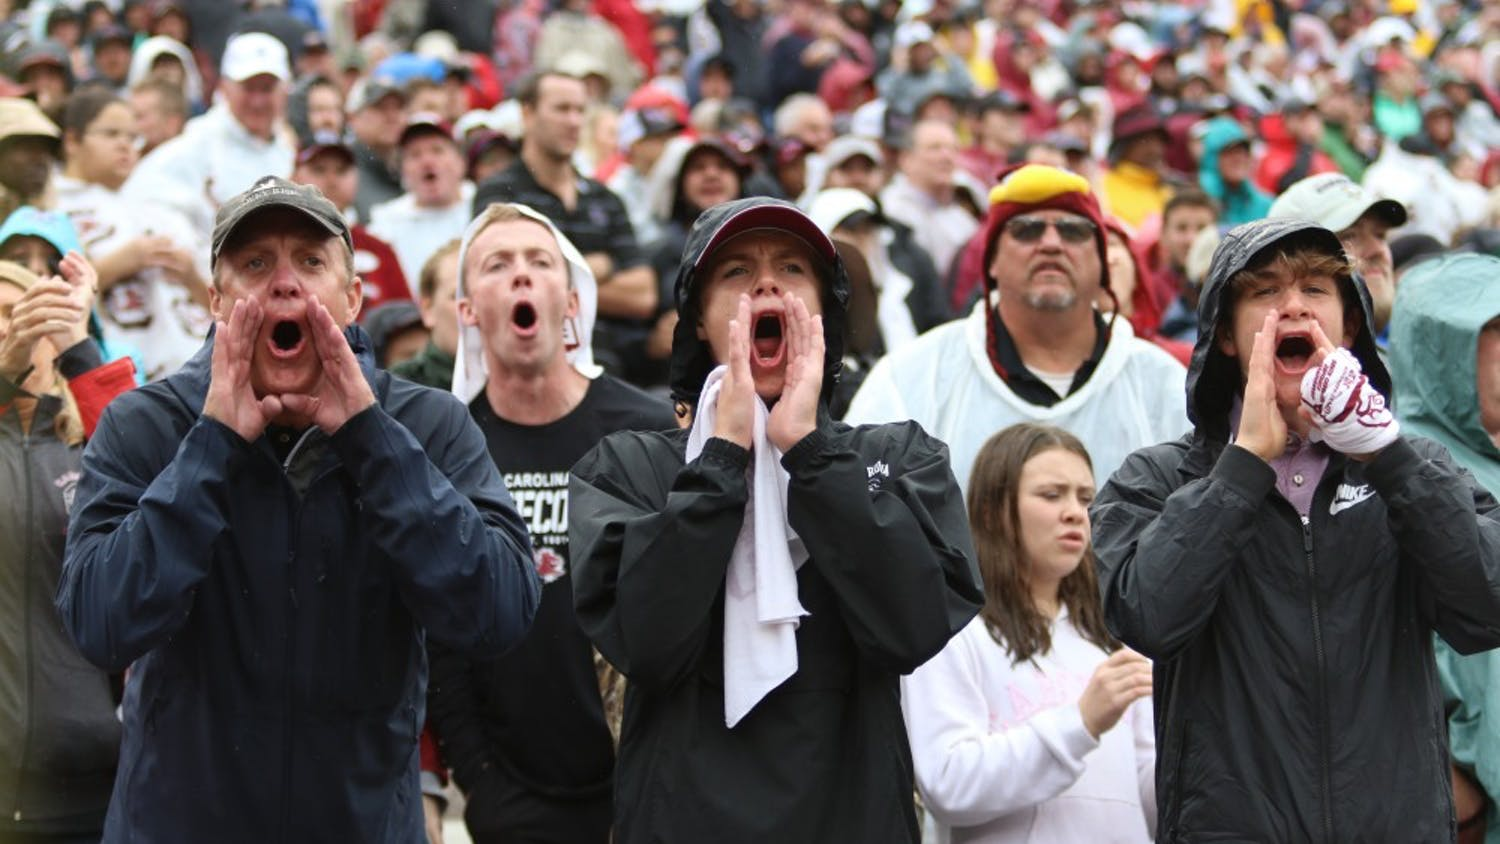 Fans boo in protest of the referees' calls during the game against Florida at Williams-Brice Stadium Saturday.